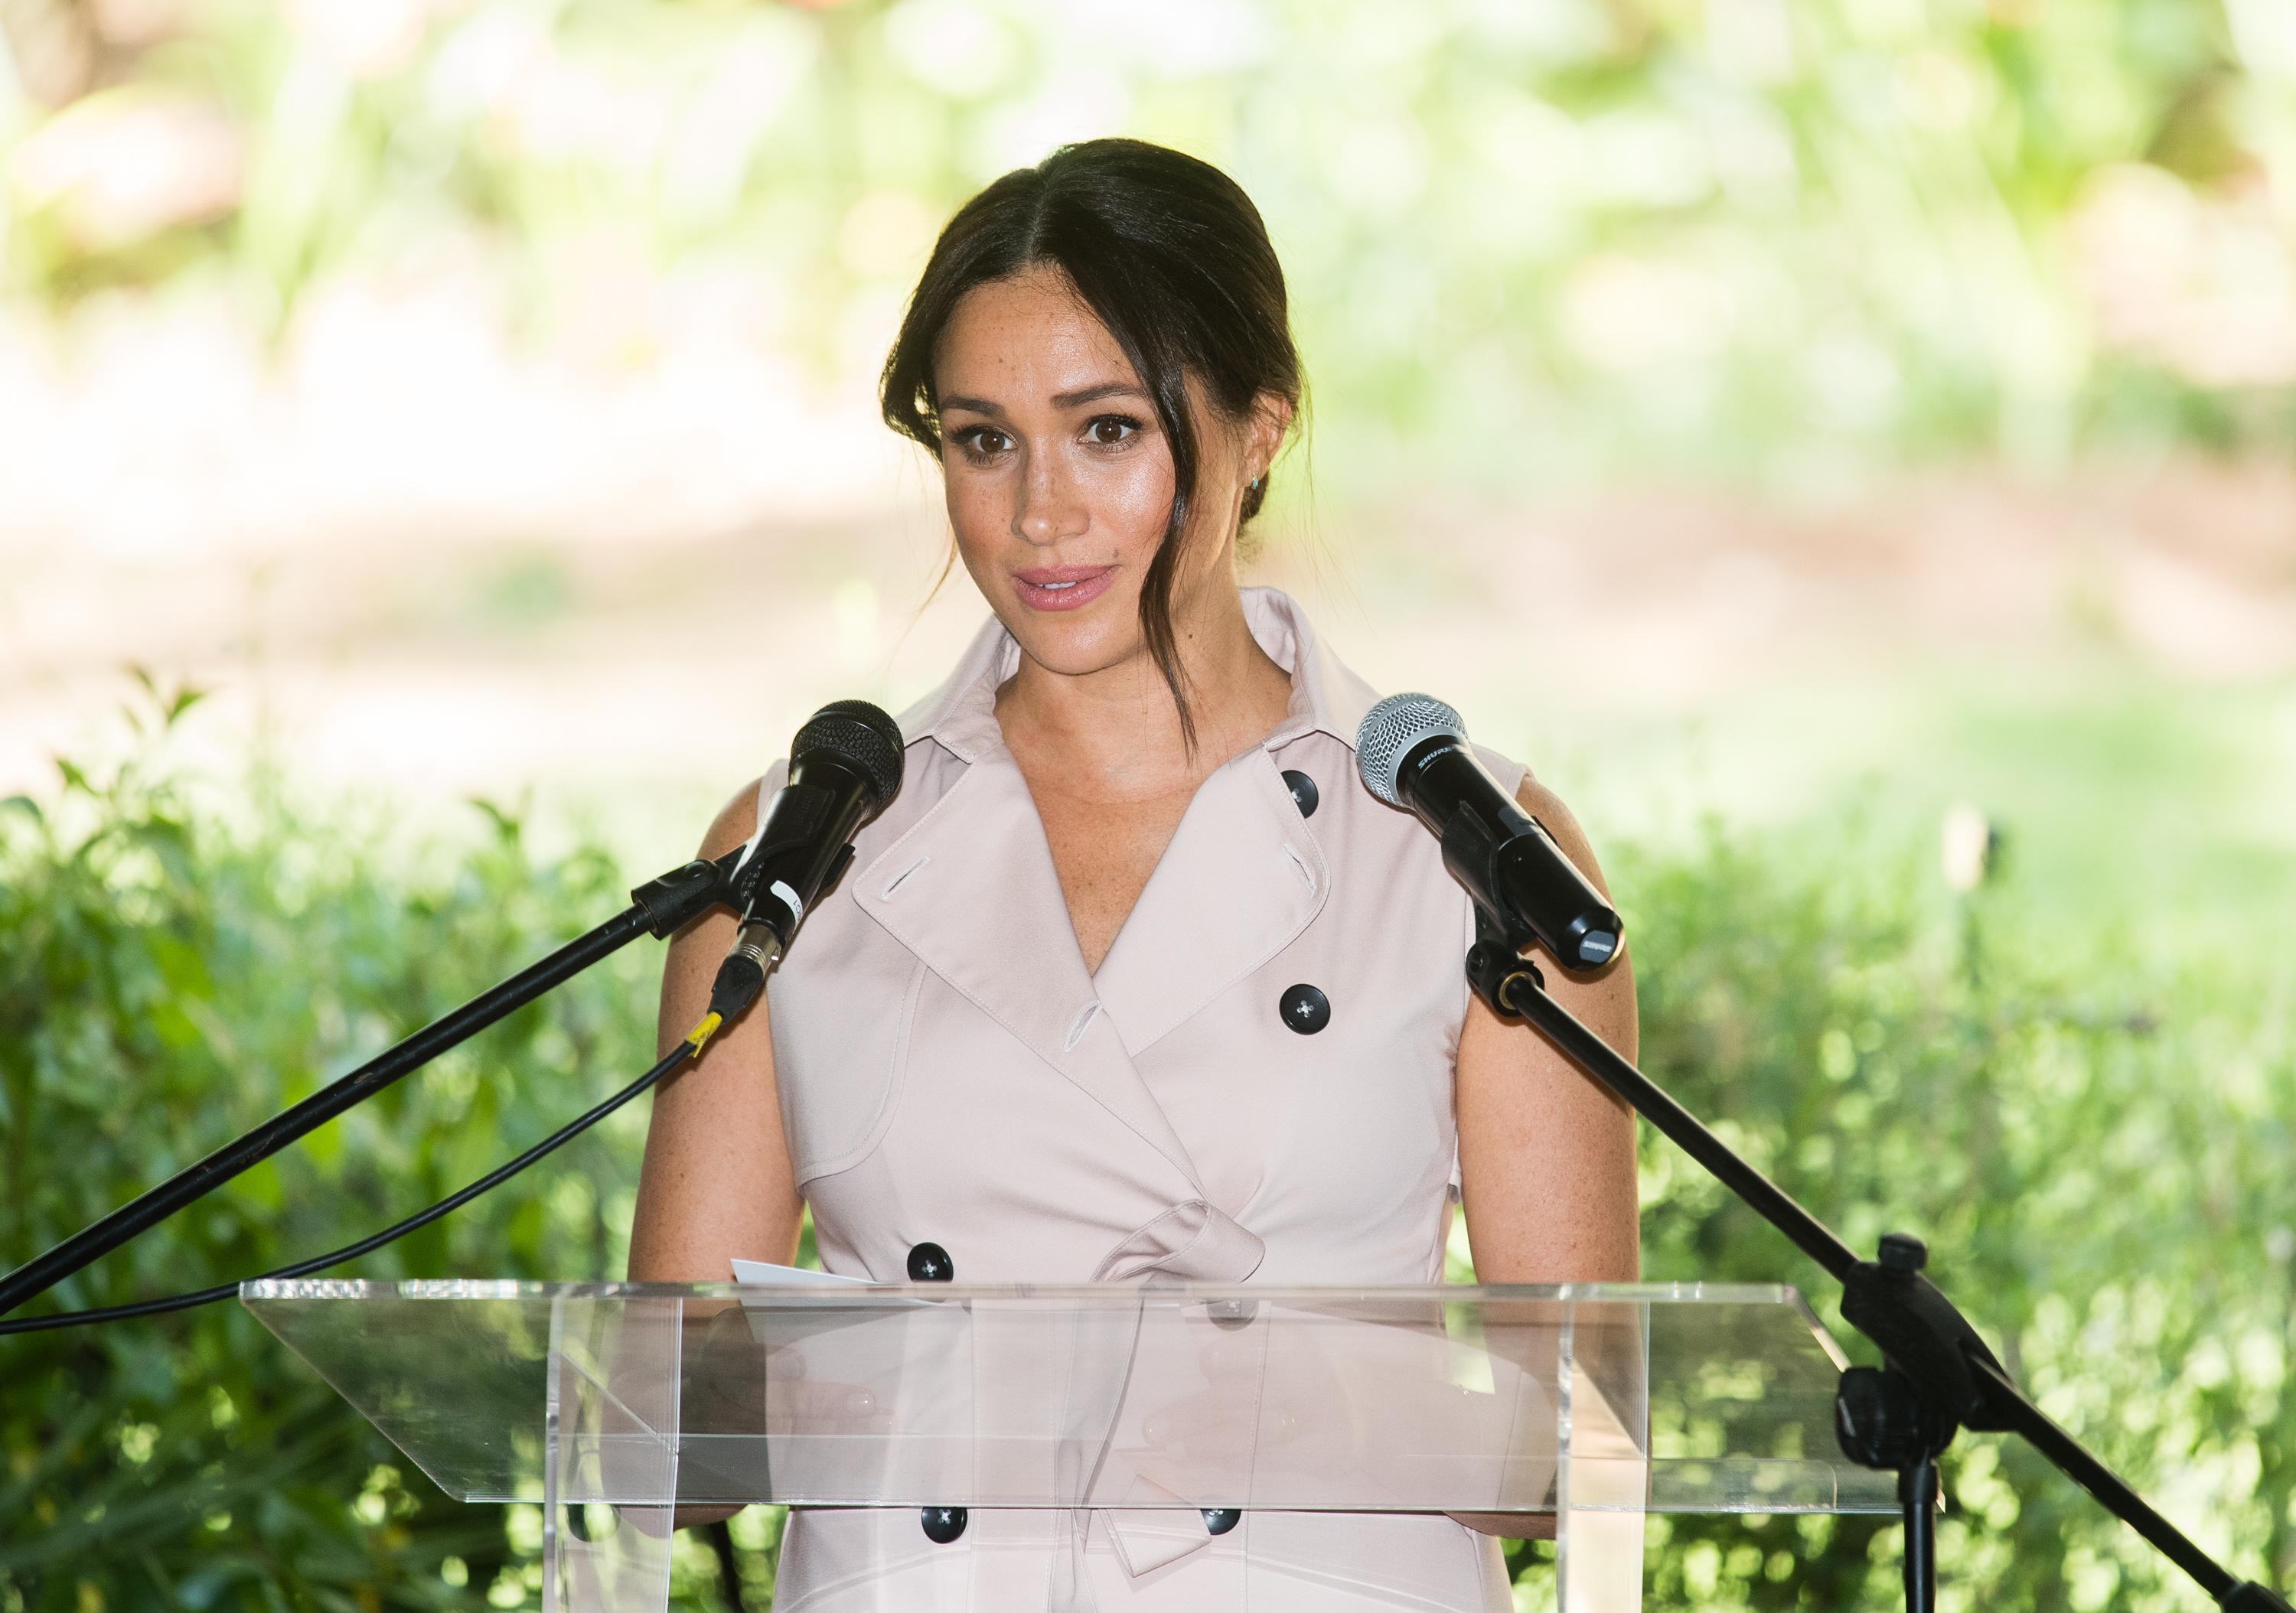 JJOHANNESBURG, SOUTH AFRICA - OCTOBER 02: Meghan, Duchess of Sussex gives a speech as she visits the British High Commissioner's residence to attend an afternoon reception to celebrate the UK and South Africa's important business and investment relationship, looking ahead to the Africa Investment Summit the UK will host in 2020. This is part of the Duke and Duchess of Sussex's royal tour to South Africa. on October 02, 2019 in Johannesburg, South Africa. (Photo by Samir Hussein/WireImage)